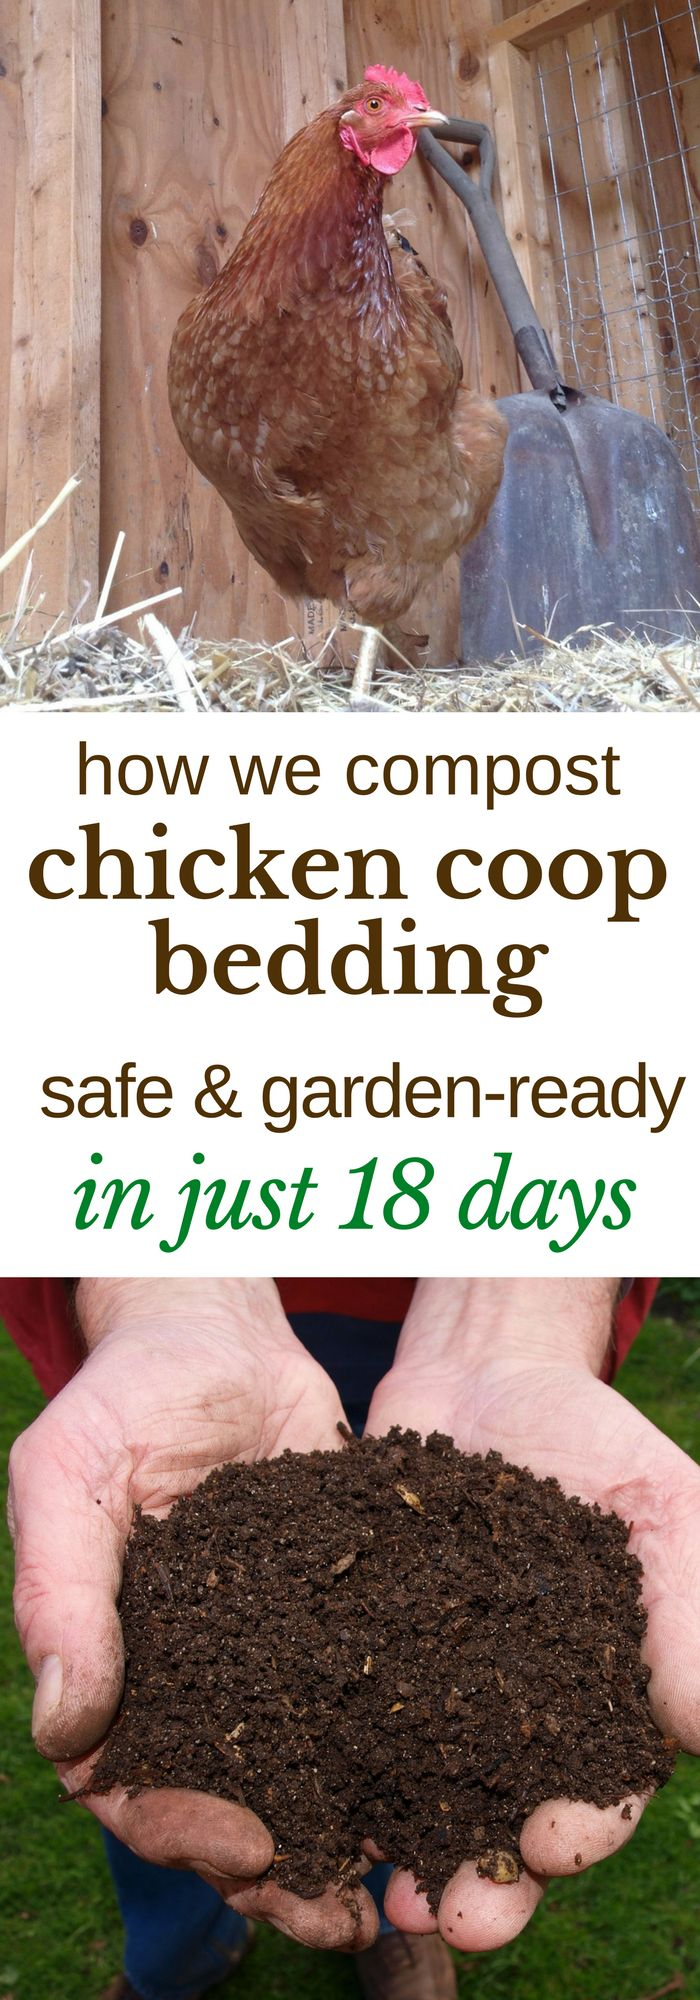 Here's how we turn the deep litter from our chicken coop into safe, garden-ready compost, in just 18 days. | Posted by: SurvivalofthePrepped.com